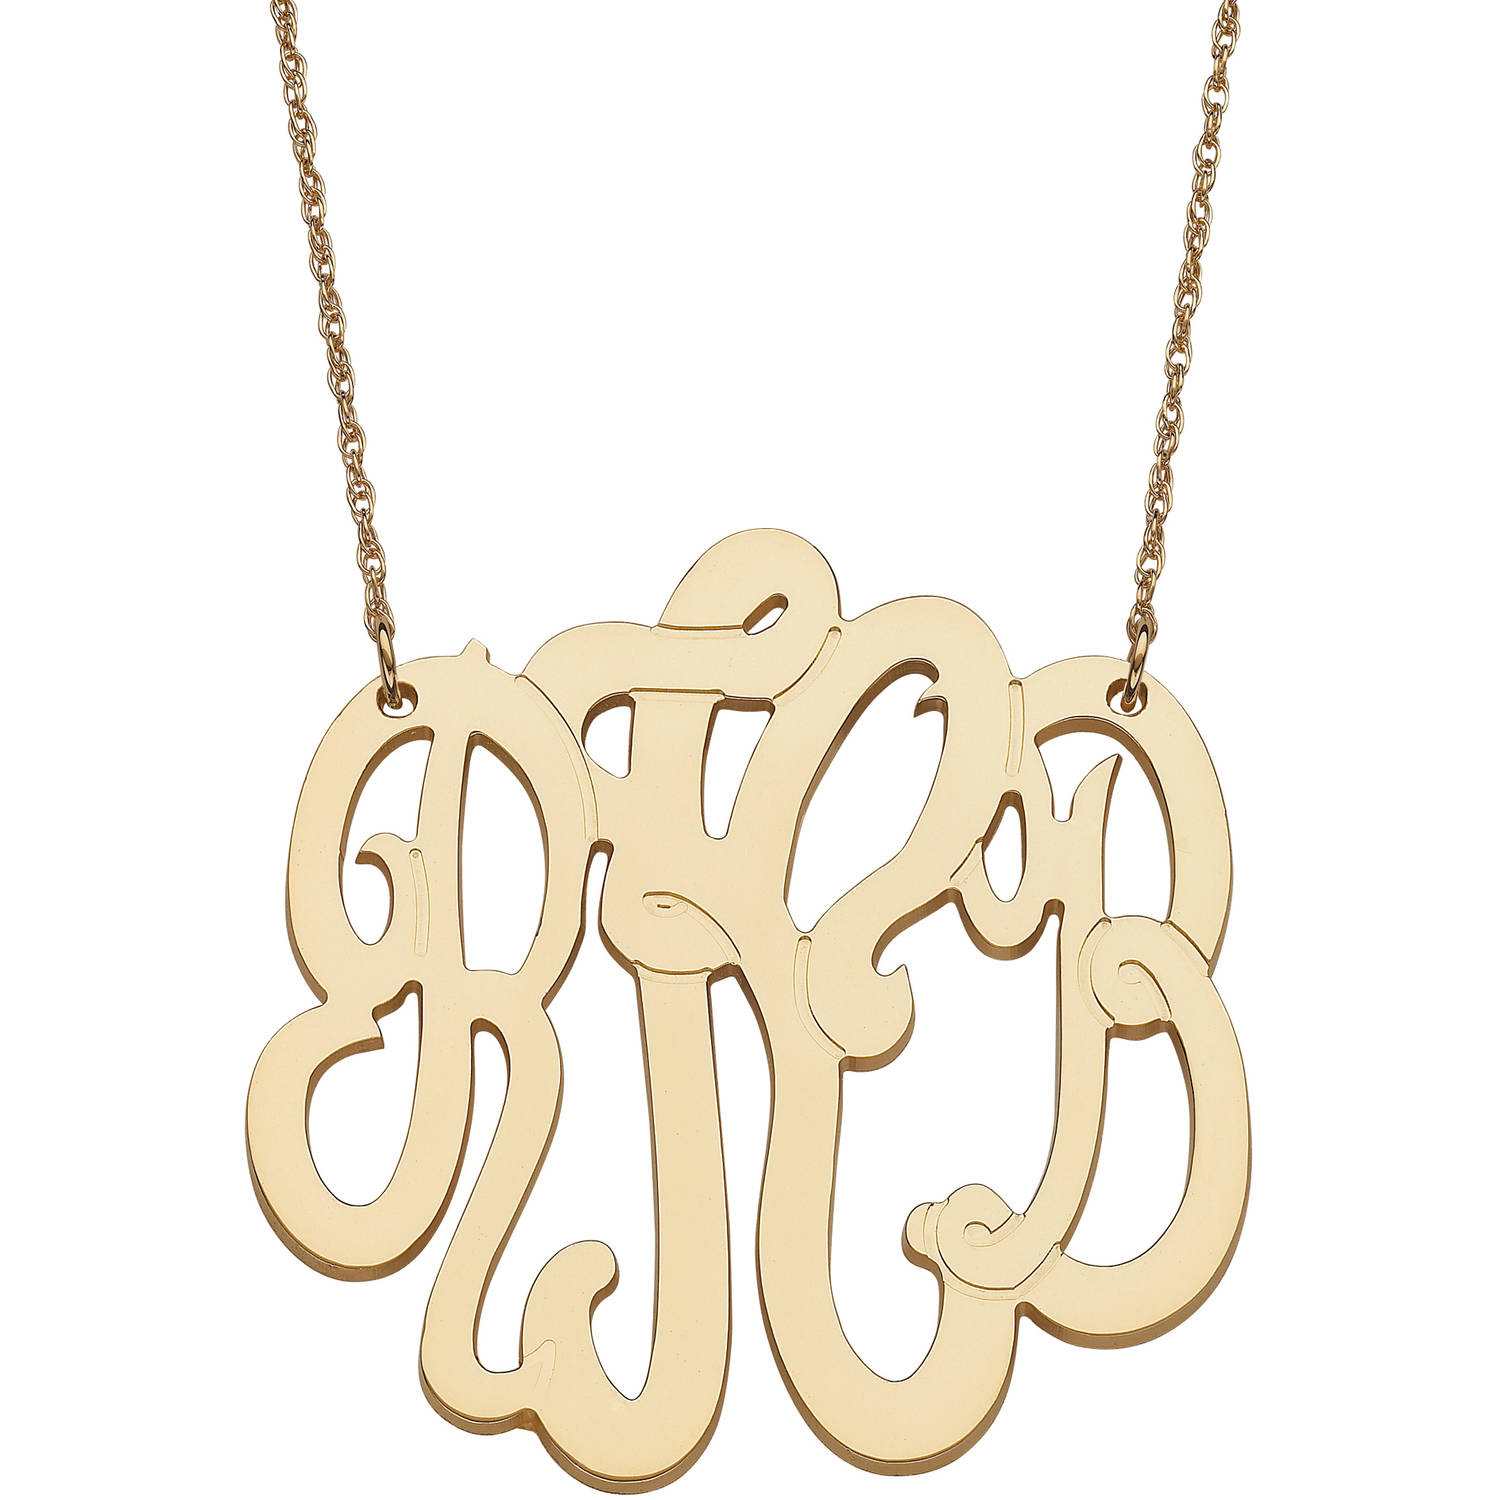 Personalized Gold over Sterling 3-Initial Monogram Necklace, Extra Large